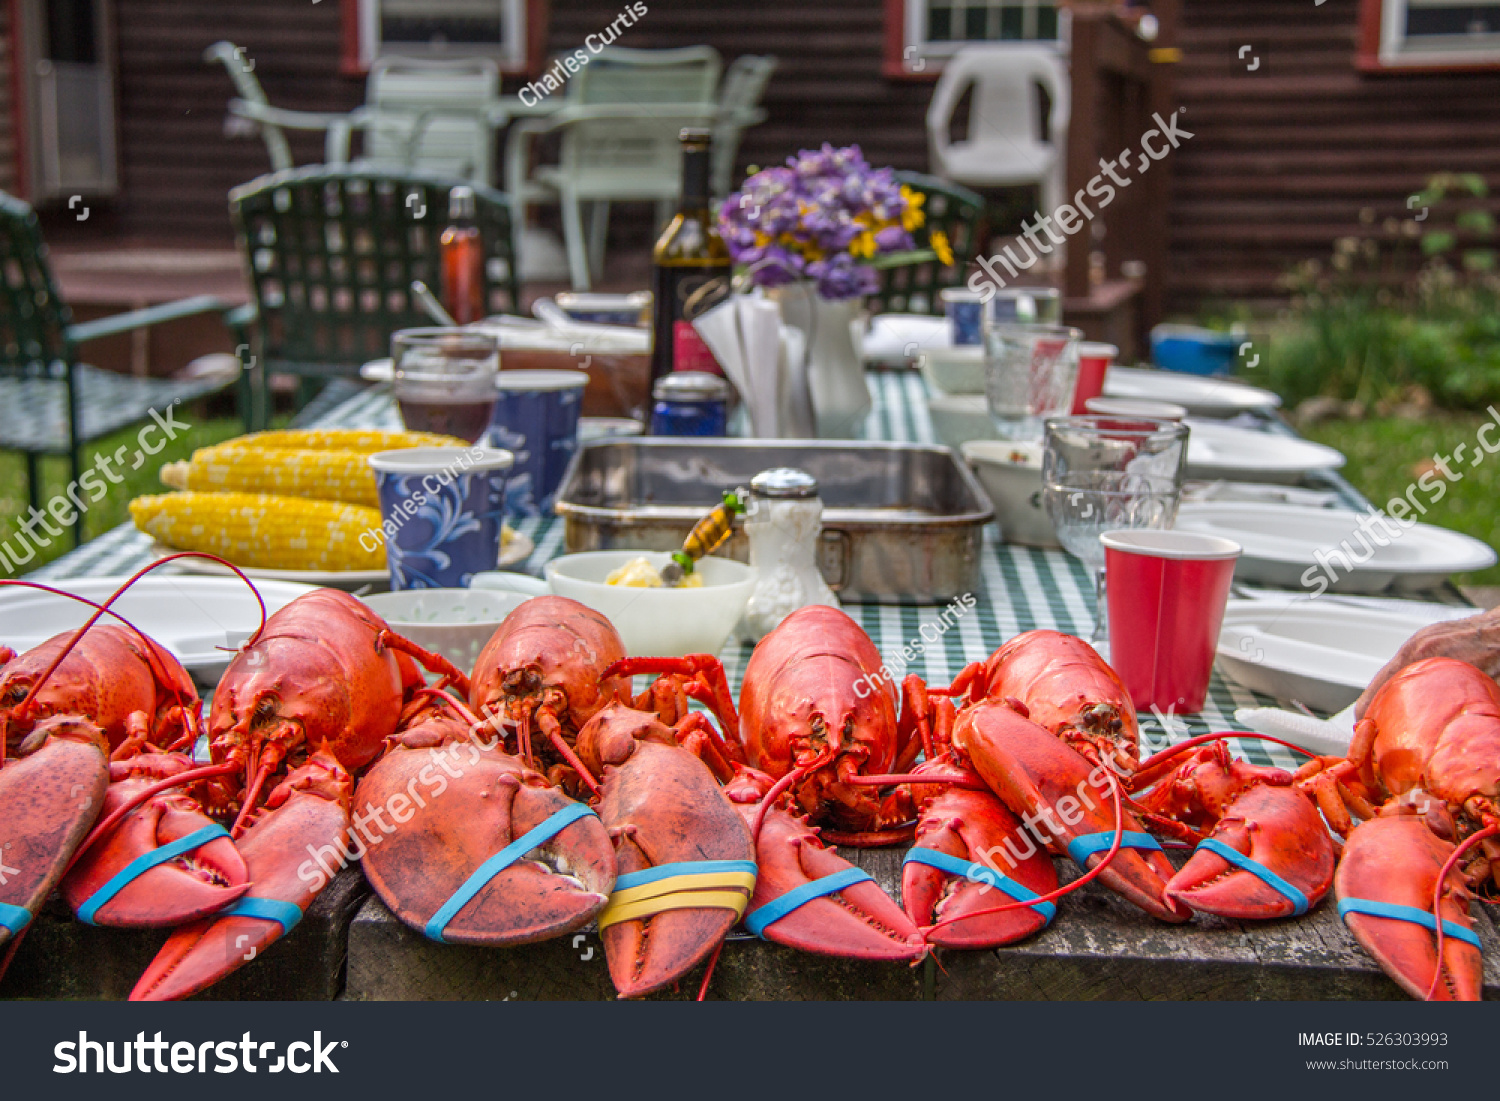 Lobster Feast HUGE Lobsters Picnic Table Stock Photo Edit Now - Huge picnic table